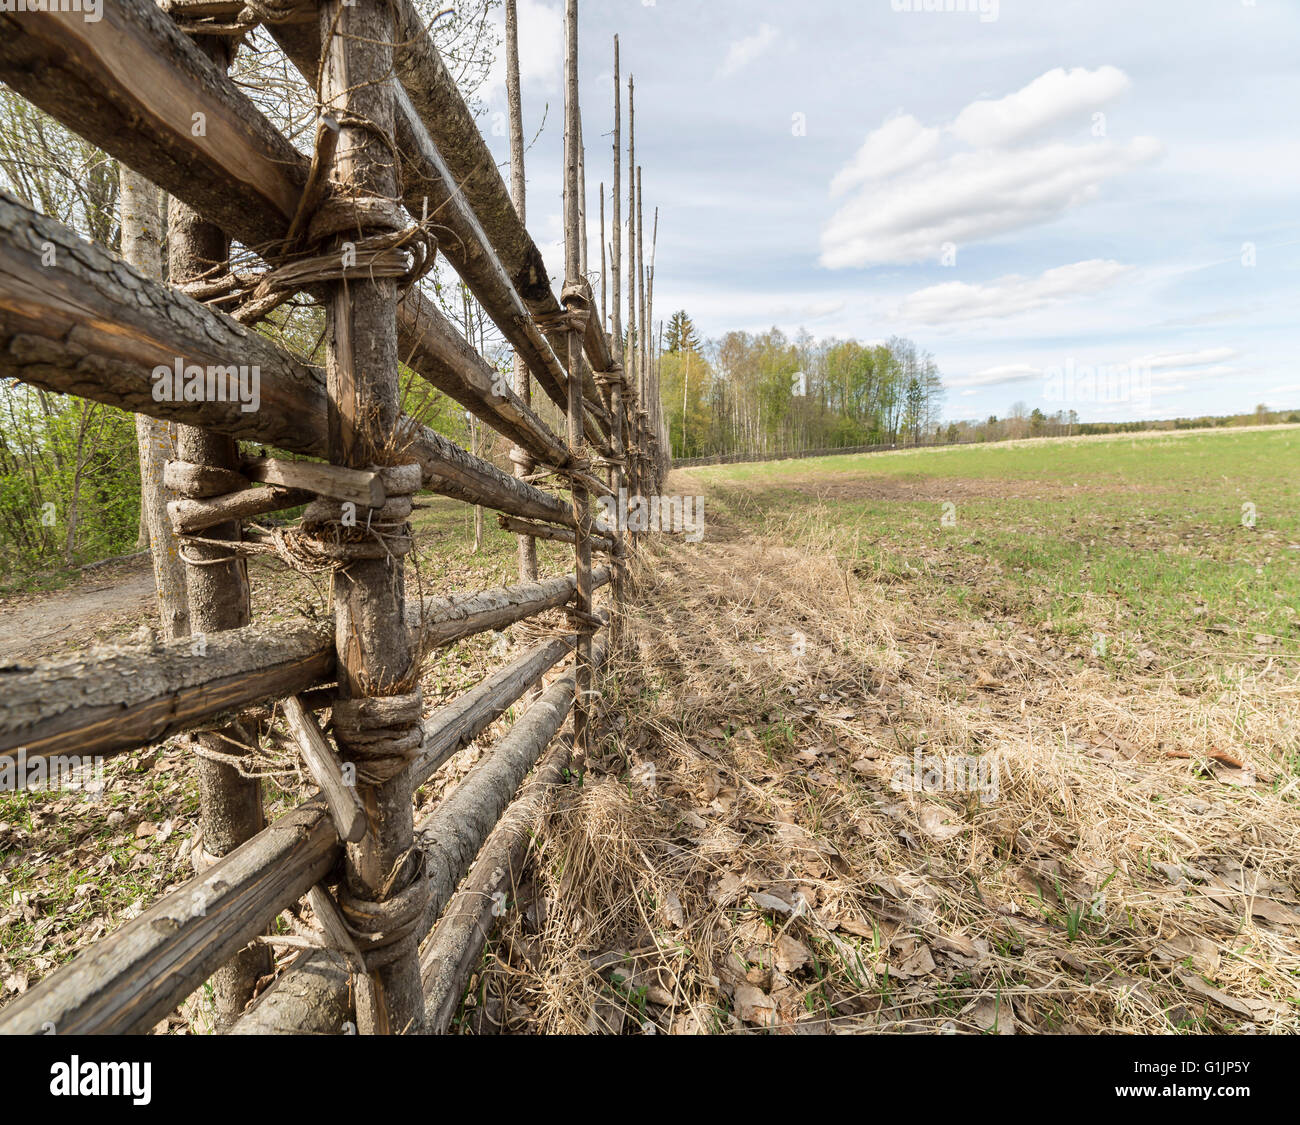 Swedish Farm Fence by Field with trees and a cloudy sky - Stock Image